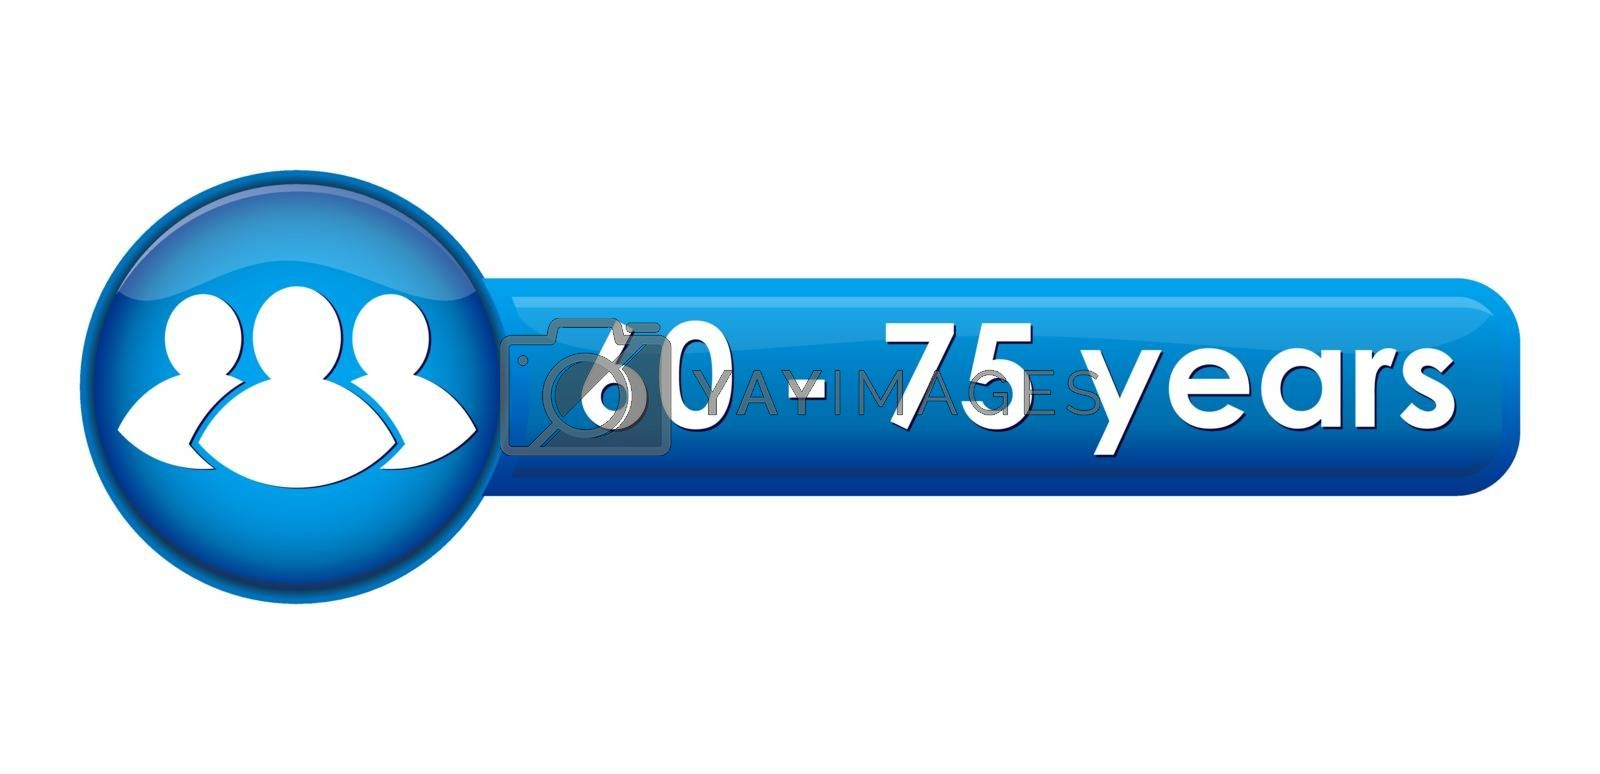 button with the pictogramme and the age limit of 60-75 years